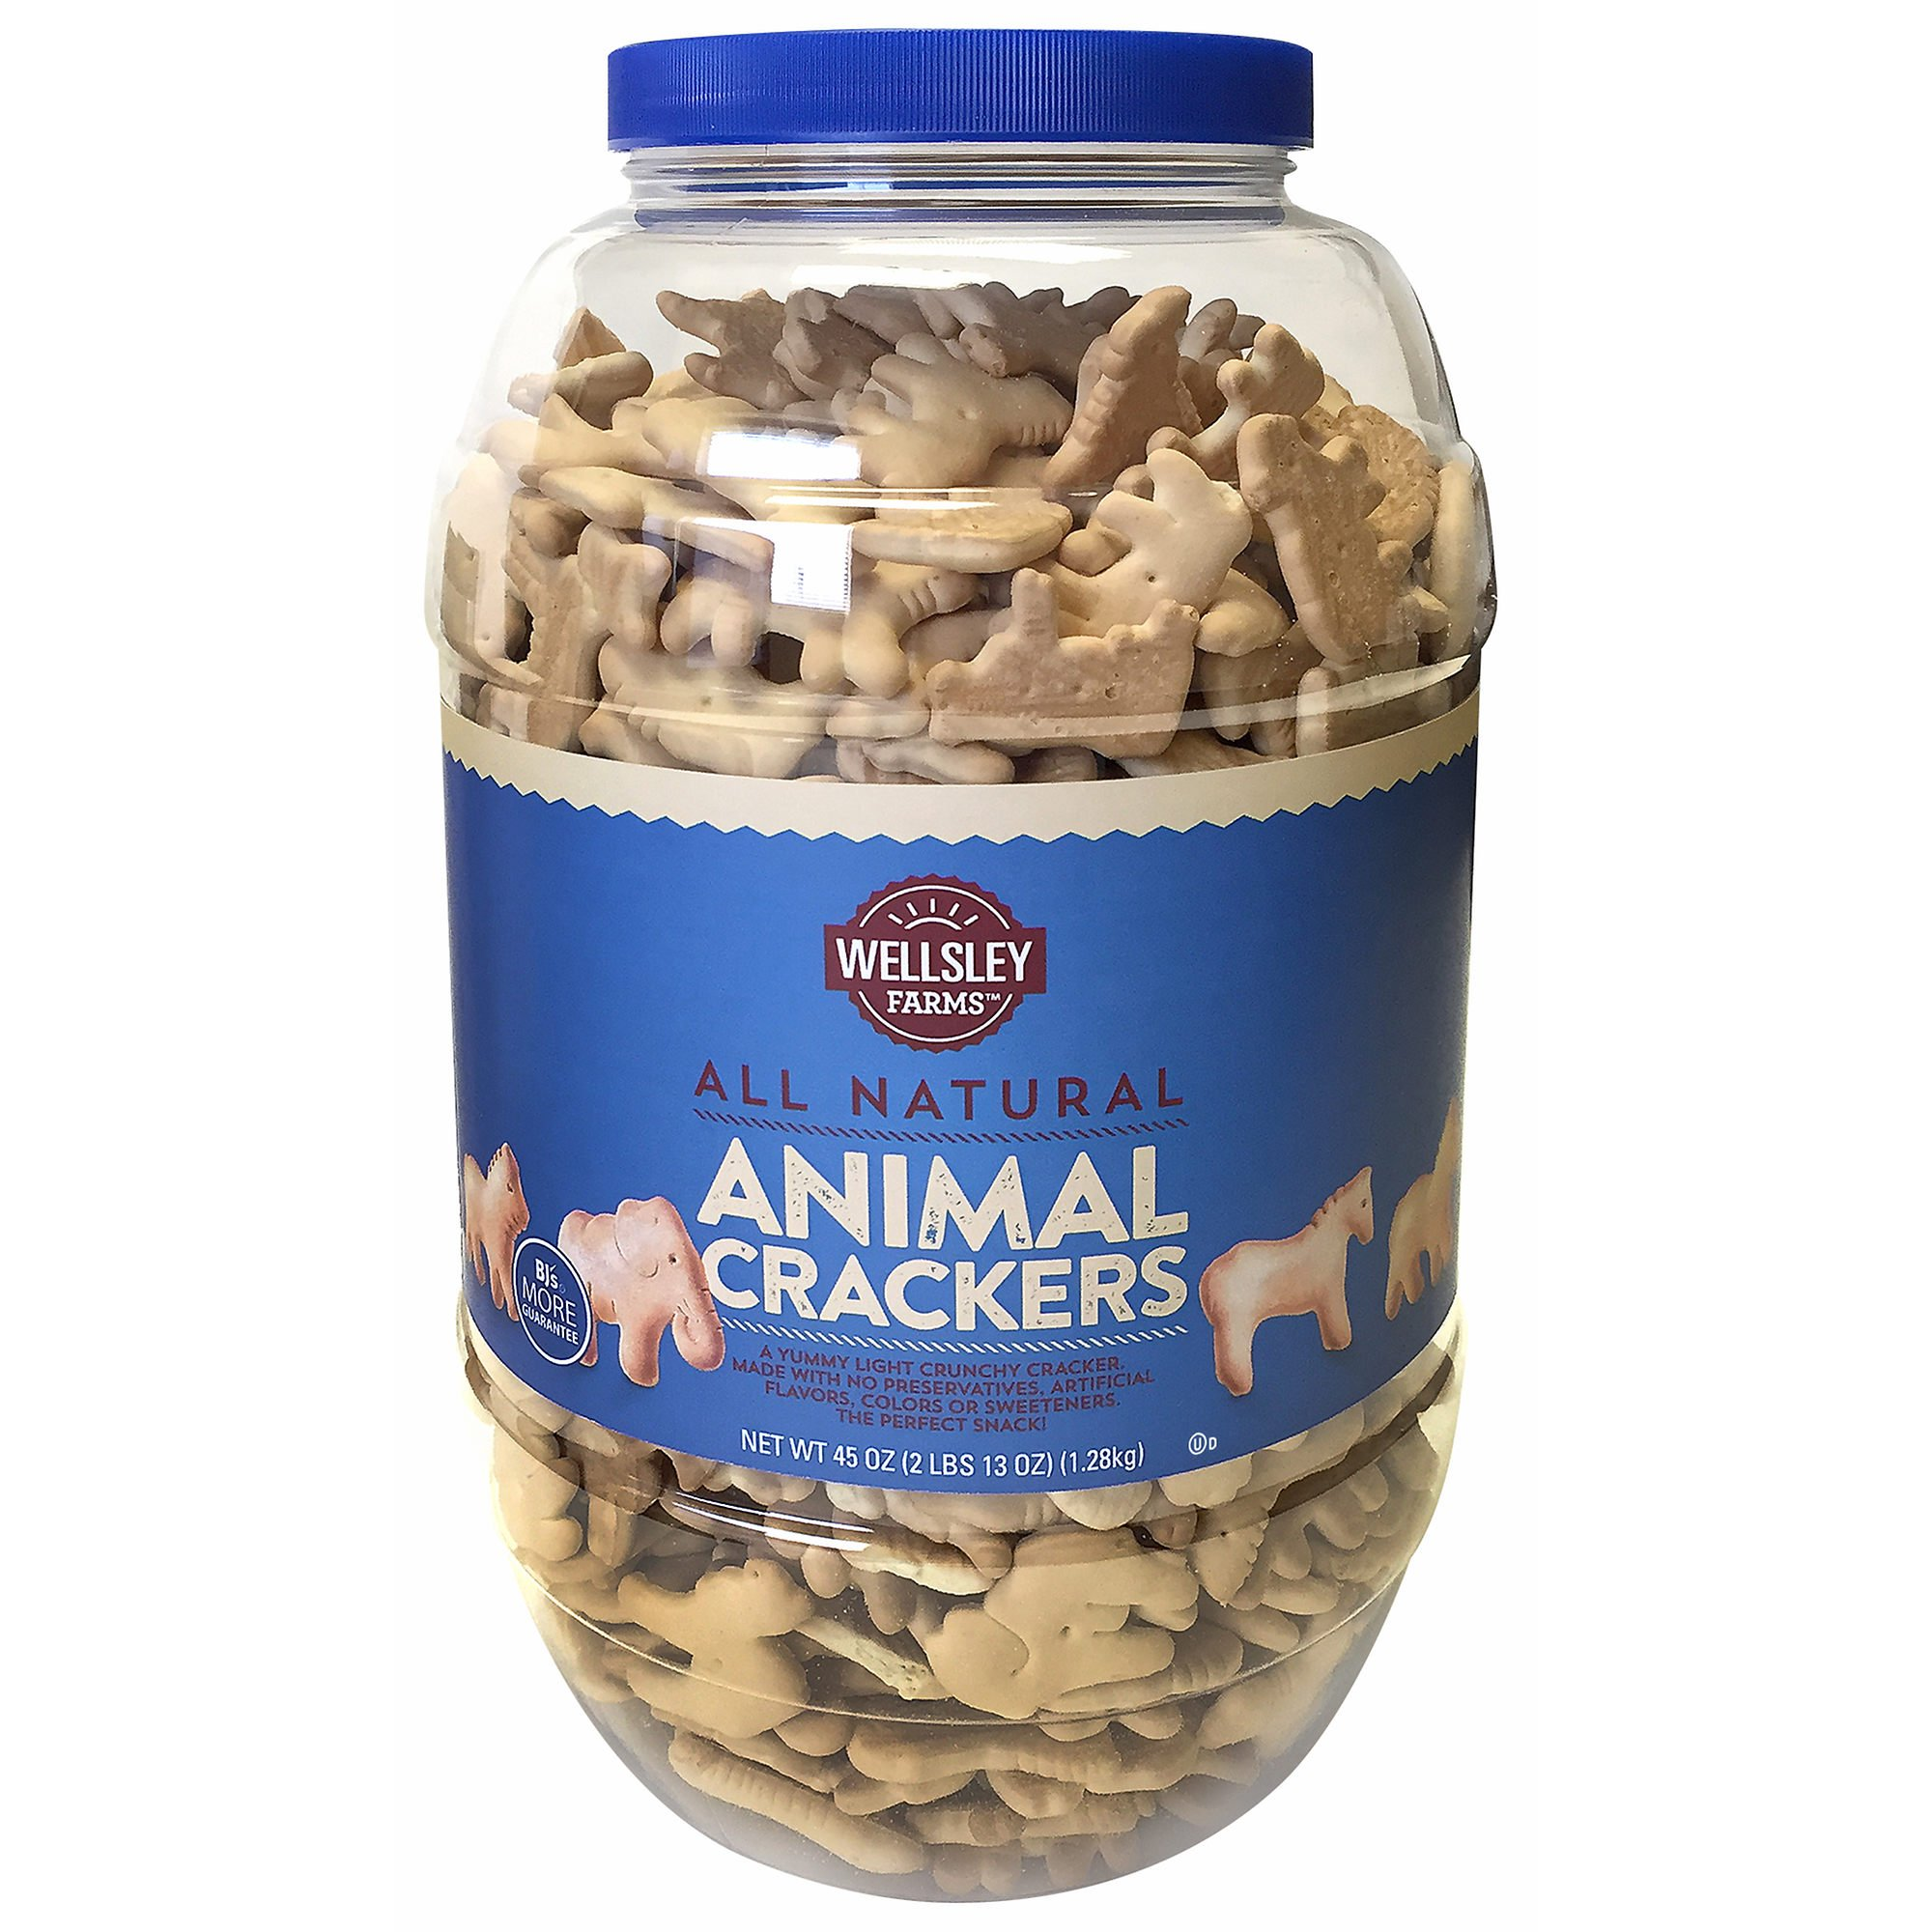 Wellsley Farms Animal Crackers, 45 oz. (pack of 6)